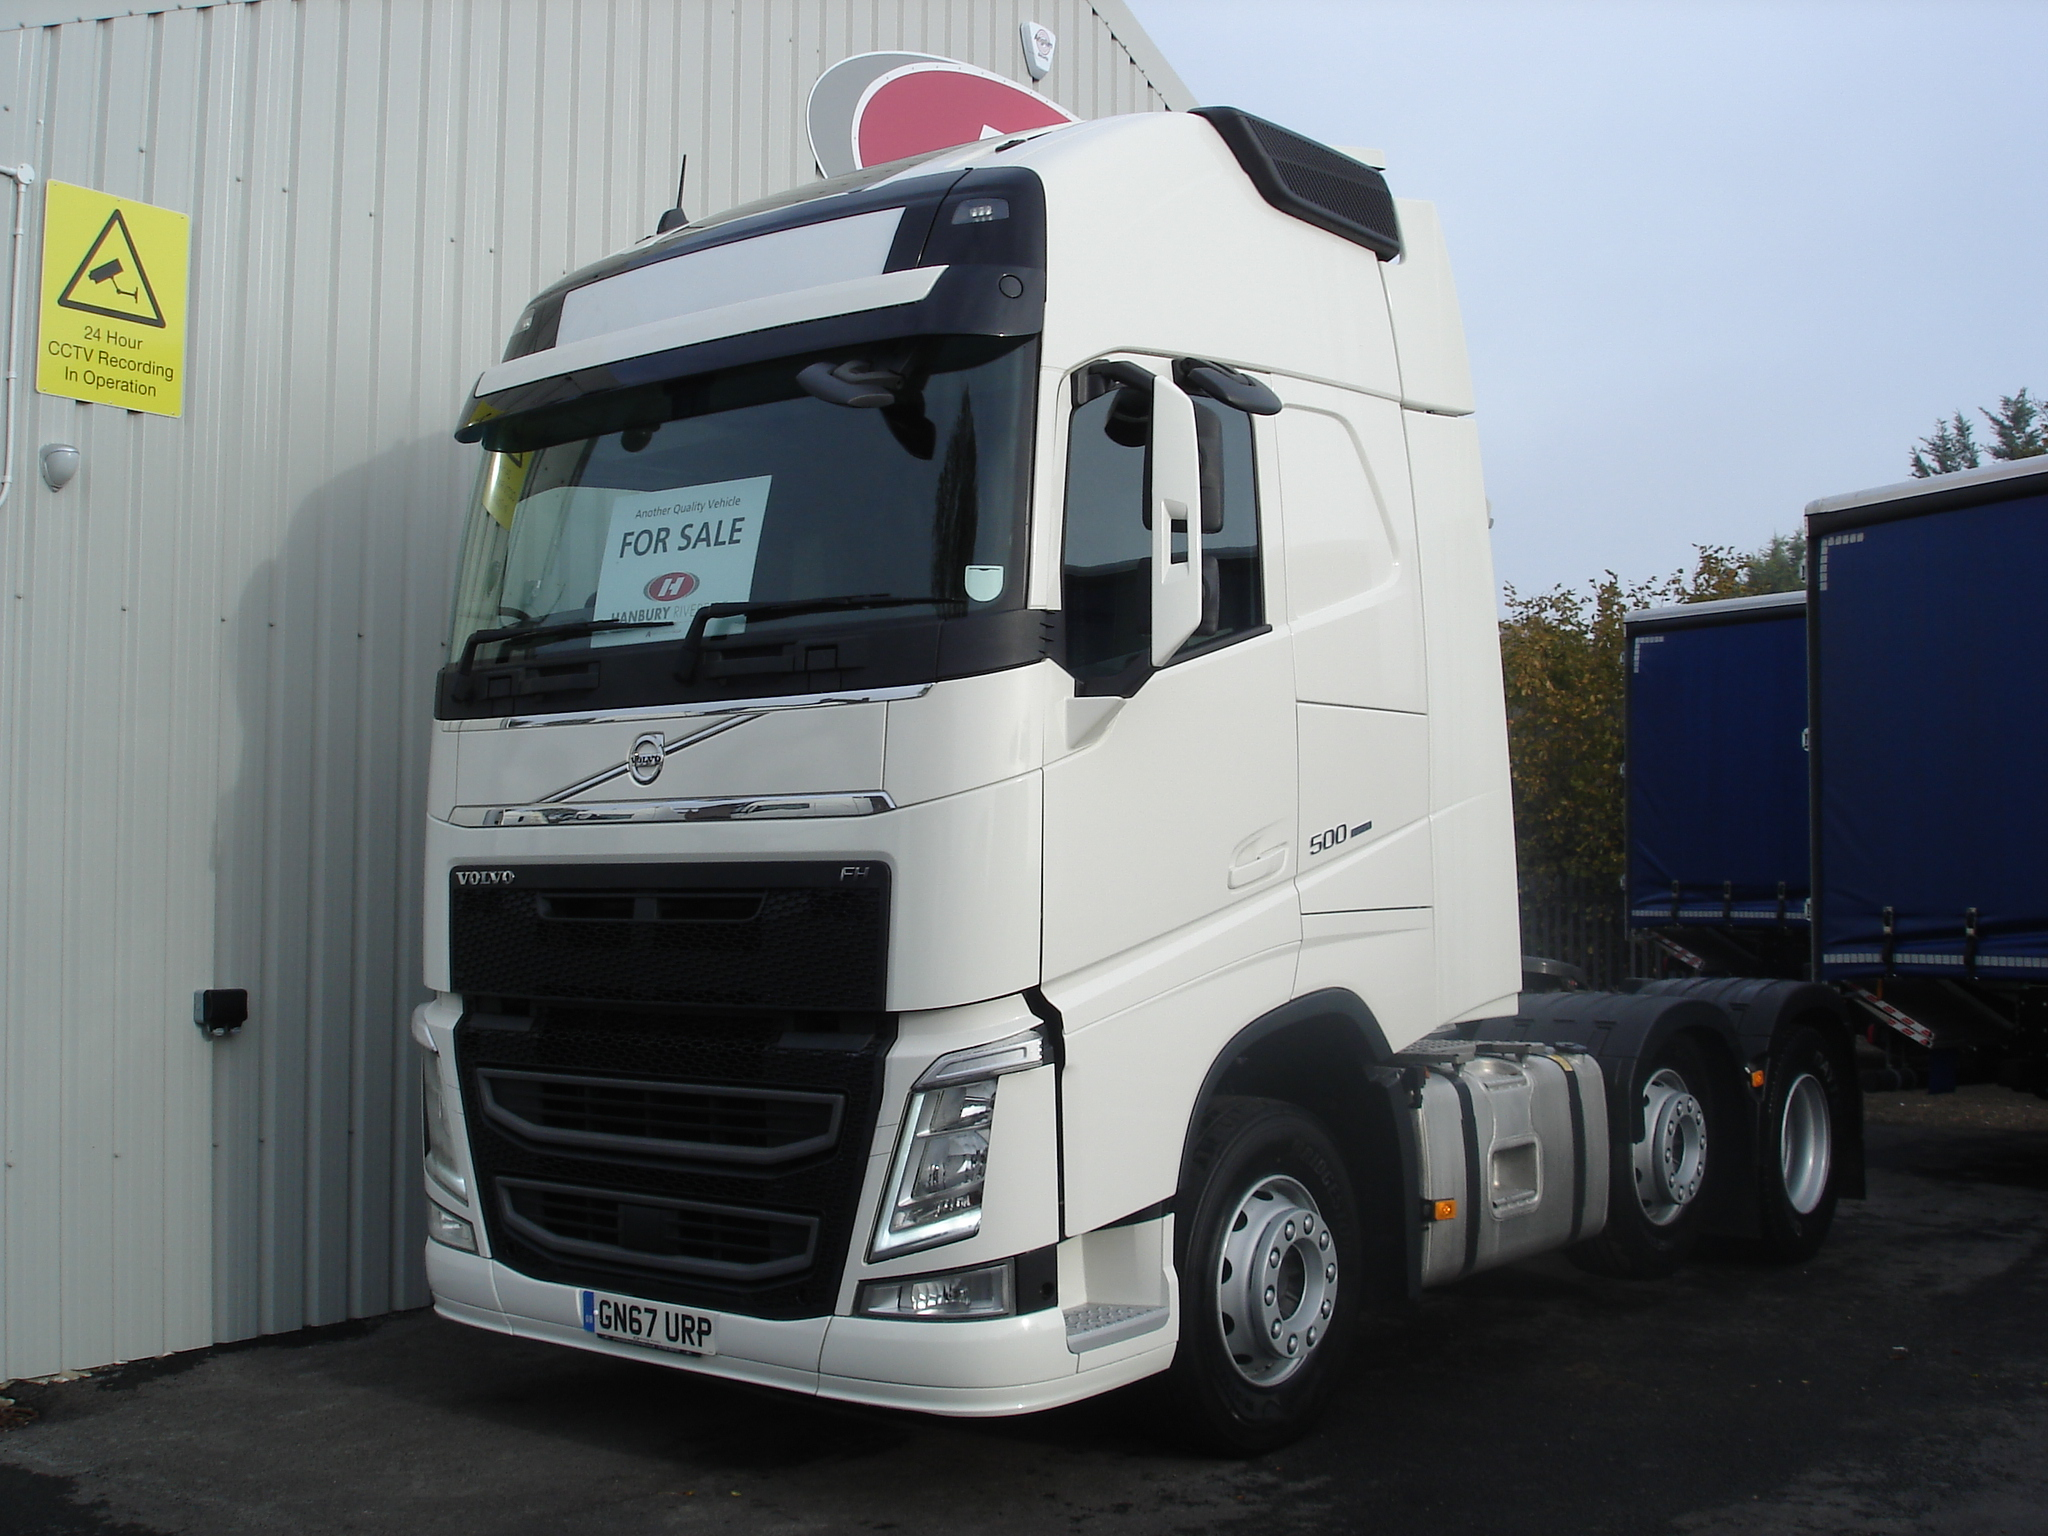 2017 (67) Volvo FH500. Euro 6, 500bhp, GTXL Twin Sleeper Cab, I Shift Automatic Gearbox, 4.1m Wheelbase, Mid-Lift Axle, Fridge/Freezer, Full Leather Trim, Advanced Audio Package, Fully Colour Coded, Full Volvo Service History, Choice & Warranty Available.